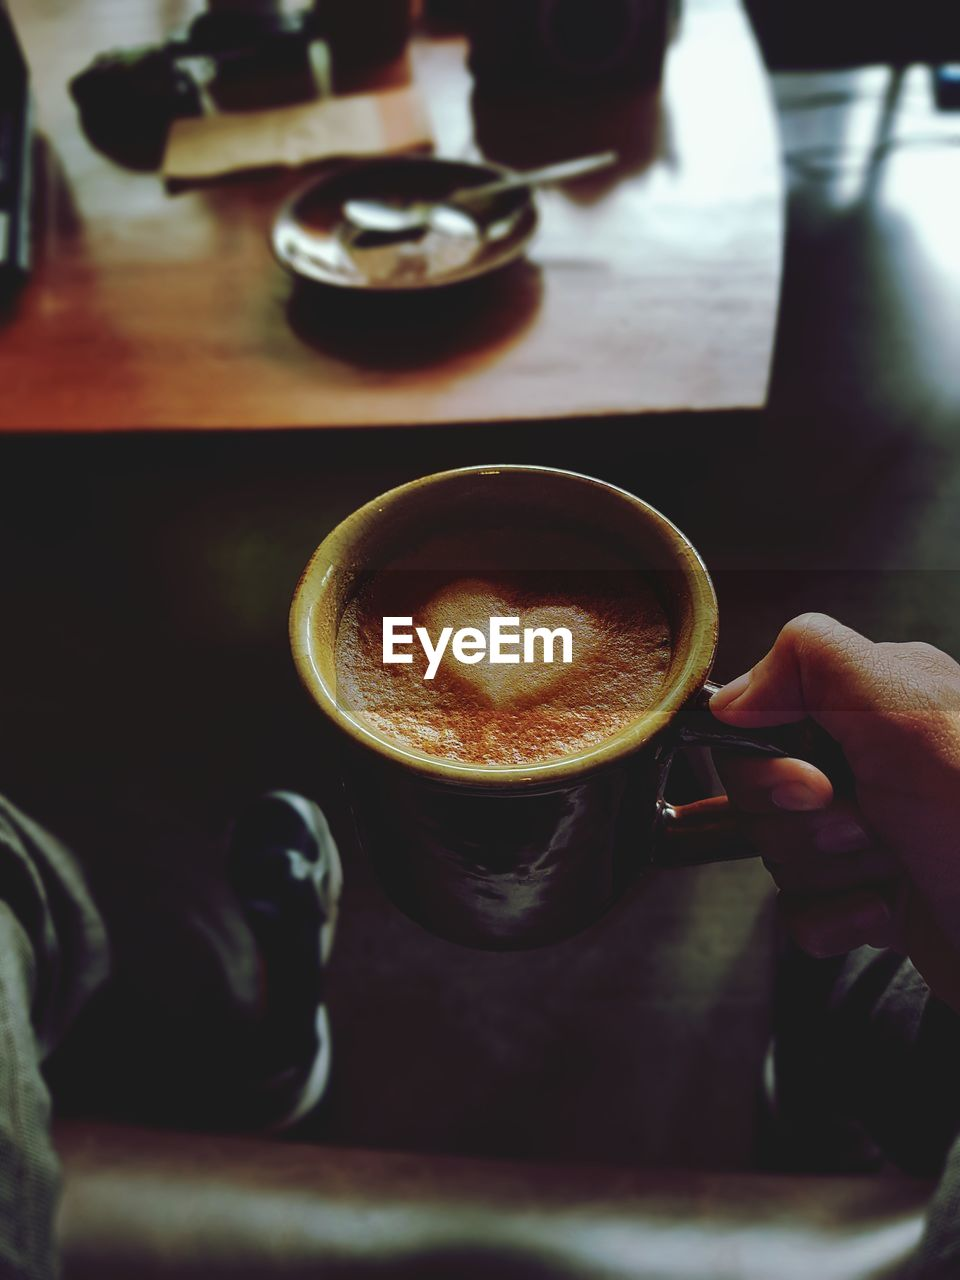 human hand, drink, food and drink, hand, coffee, refreshment, human body part, coffee - drink, mug, cup, coffee cup, one person, real people, holding, indoors, lifestyles, freshness, hot drink, frothy drink, body part, finger, latte, coffee shop, crockery, non-alcoholic beverage, barista